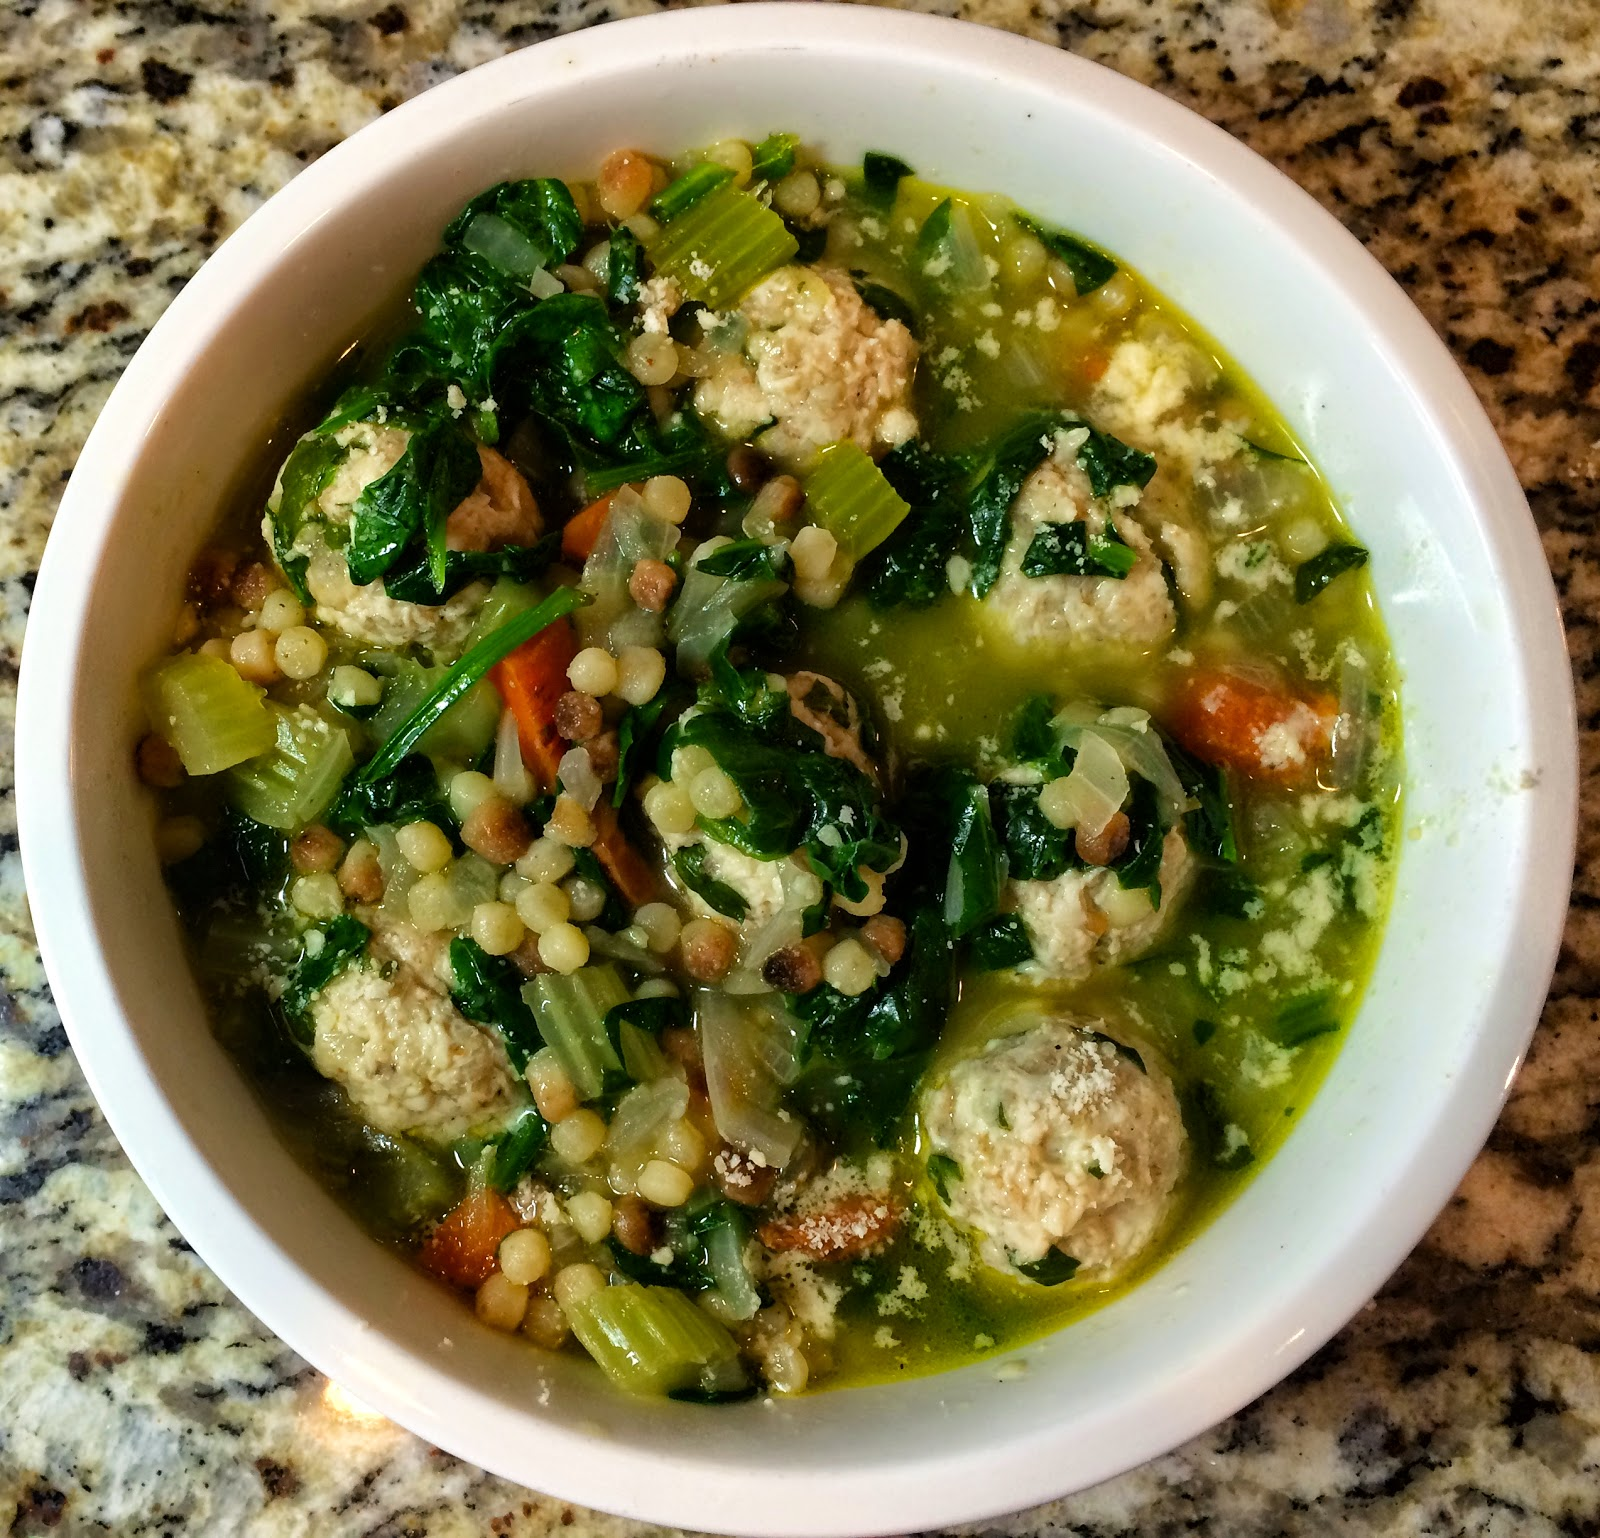 Blue apron qvc - Ingredients For Italian Wedding Soup